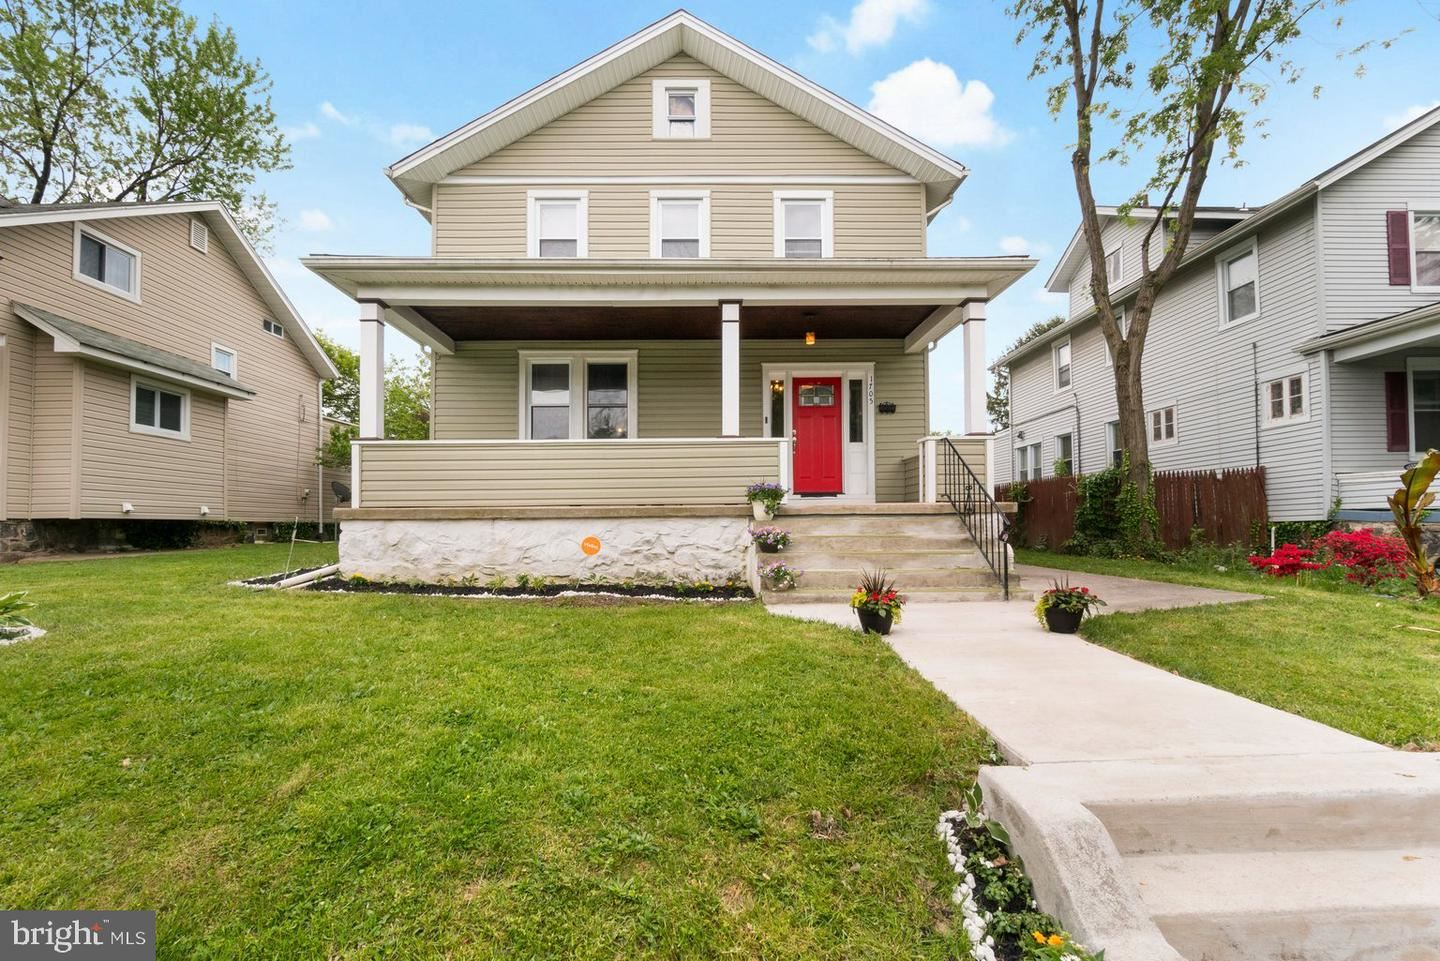 1705 LAKESIDE AVE, Baltimore, MD 21218 - MLS#: MDBA548092